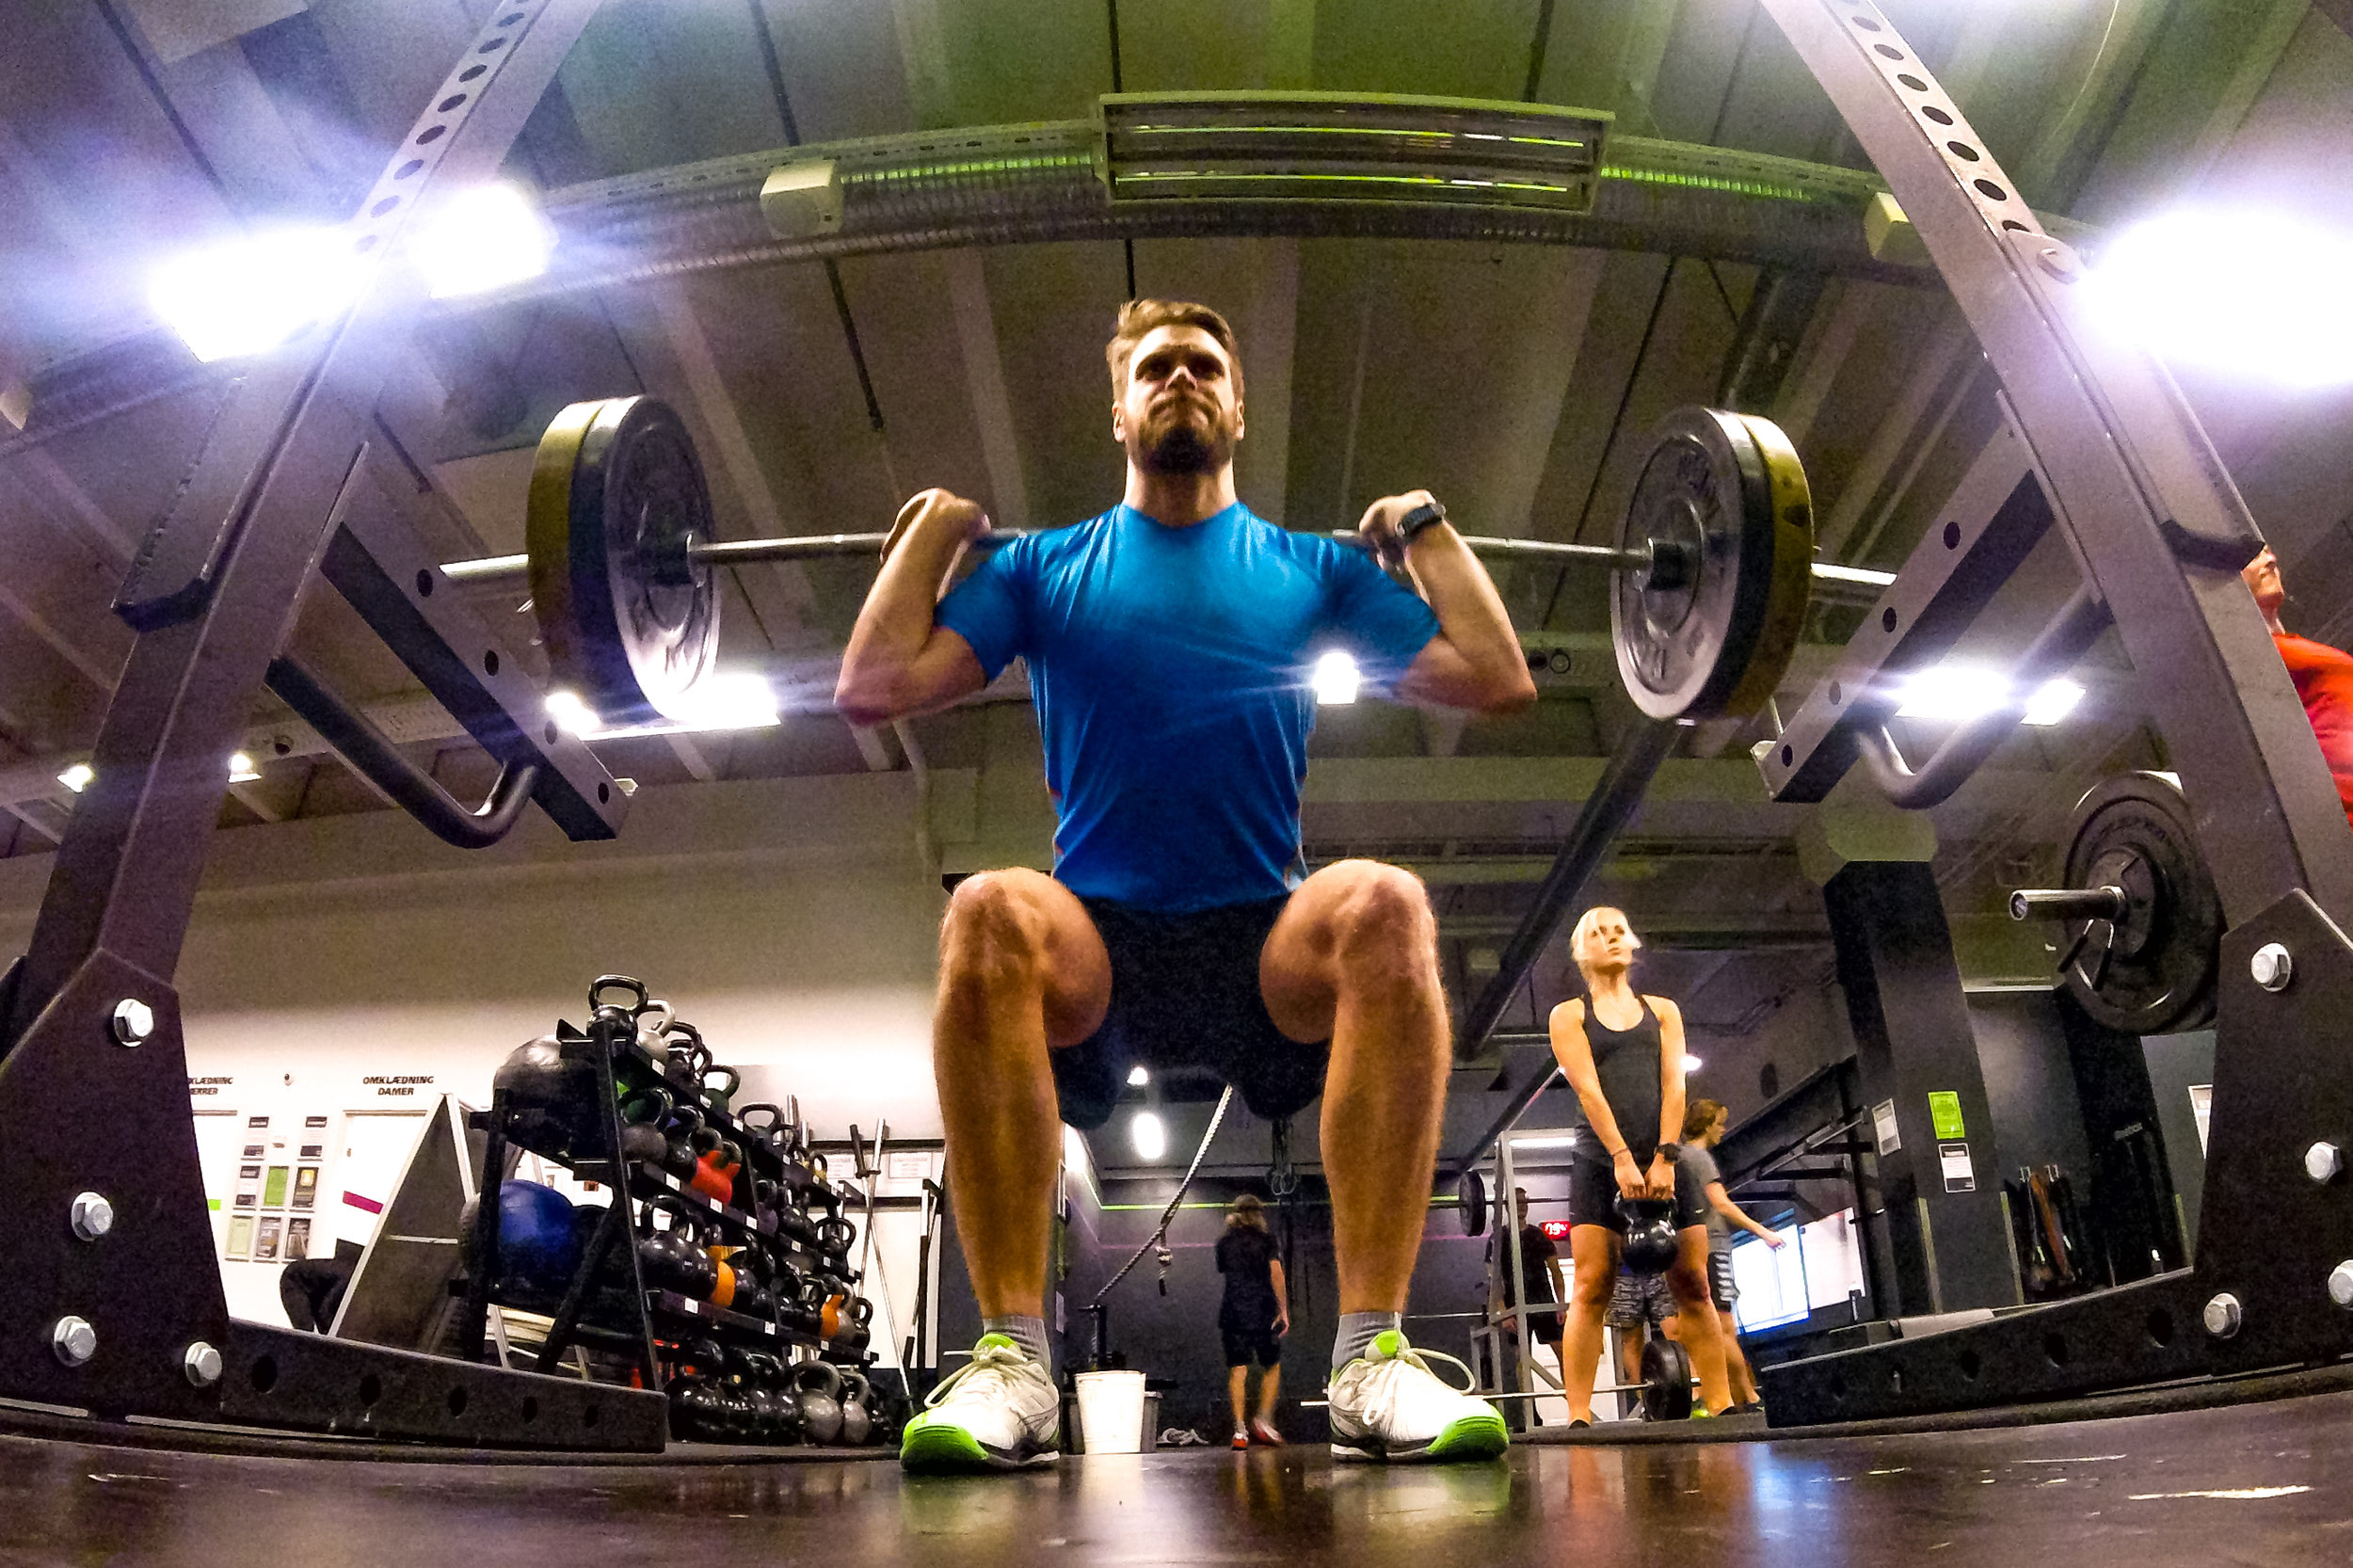 Eccentric movement is made when the muscles are turning my downwards movement into upward momentum when squatting.